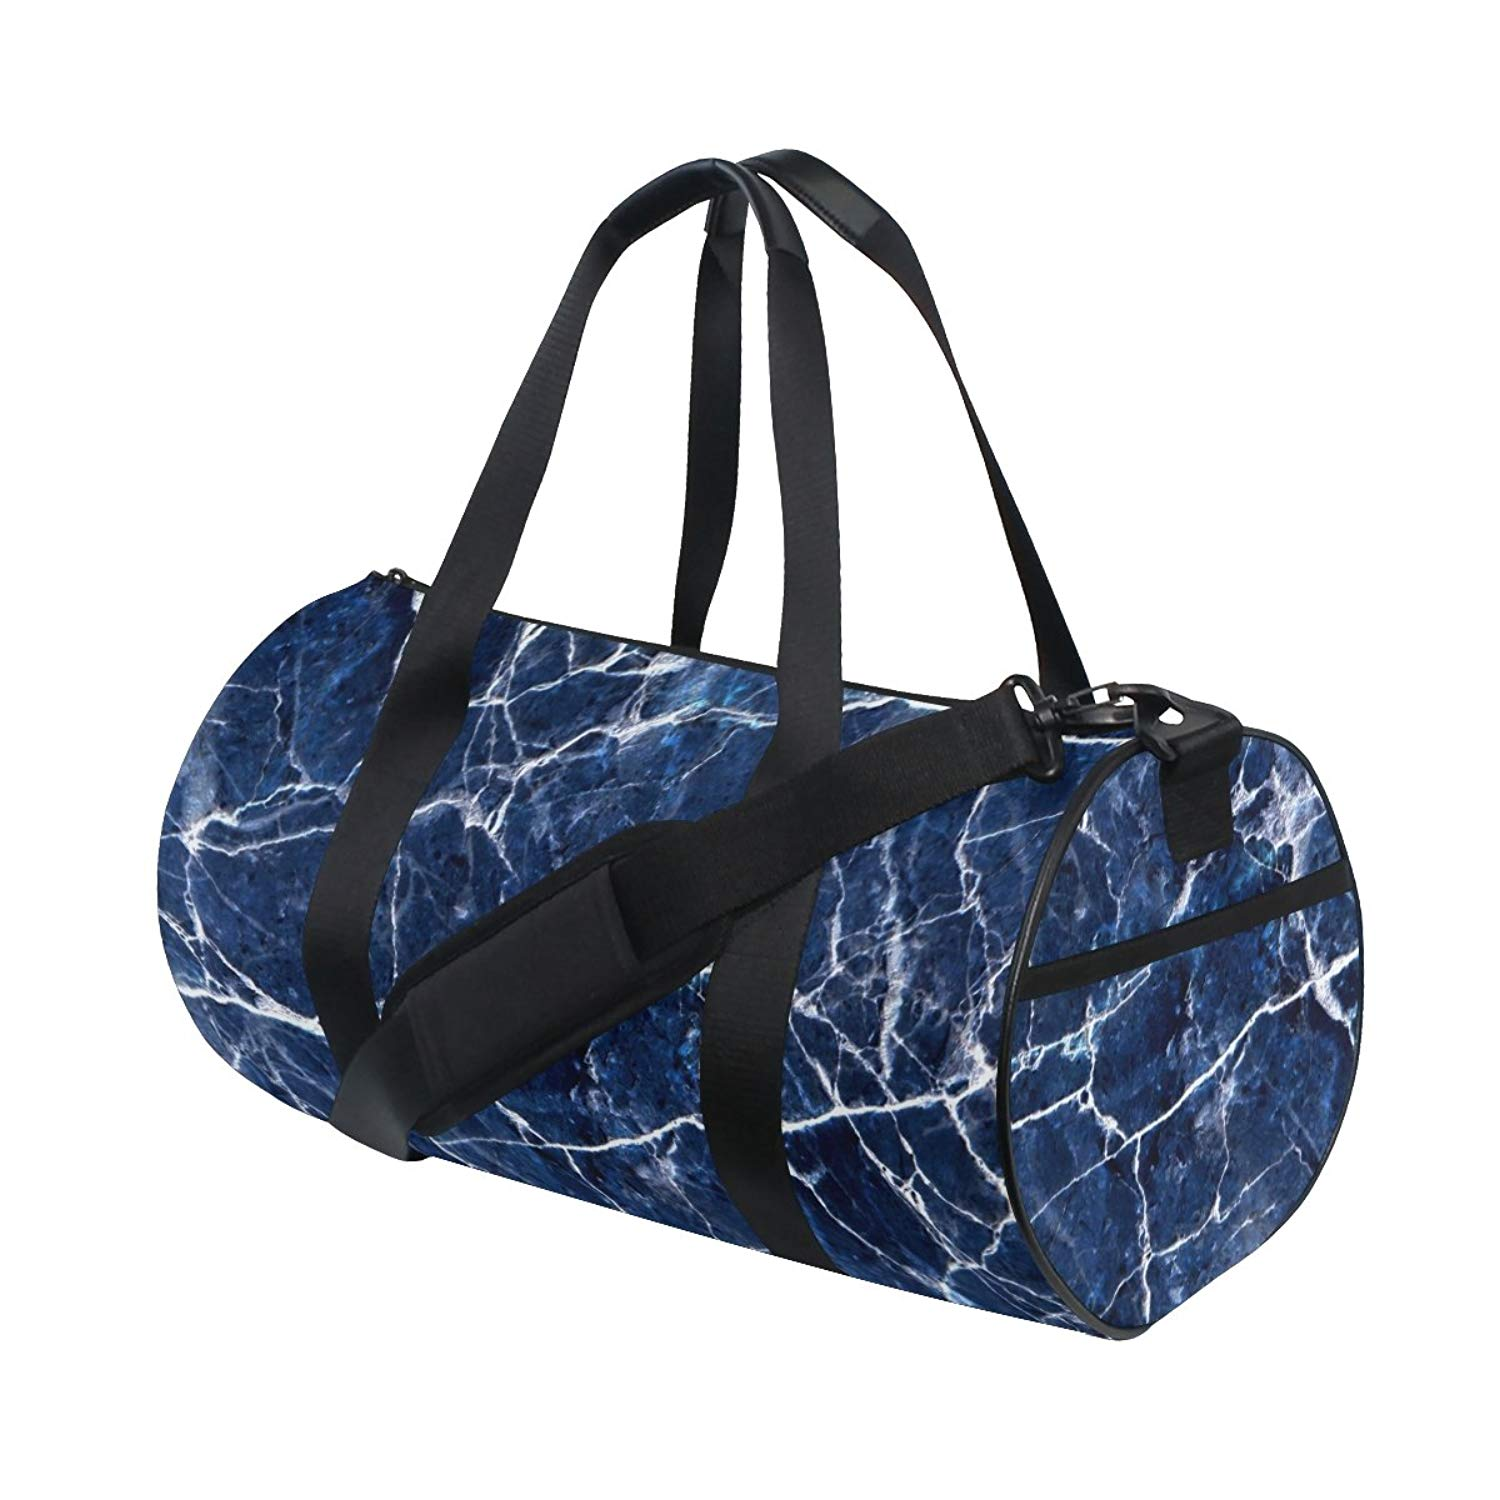 73f6ee54a855 Naanle Dark Blue Marble Texture Gym bag Sports Travel Duffle Bags for Men  Women Boys Girls